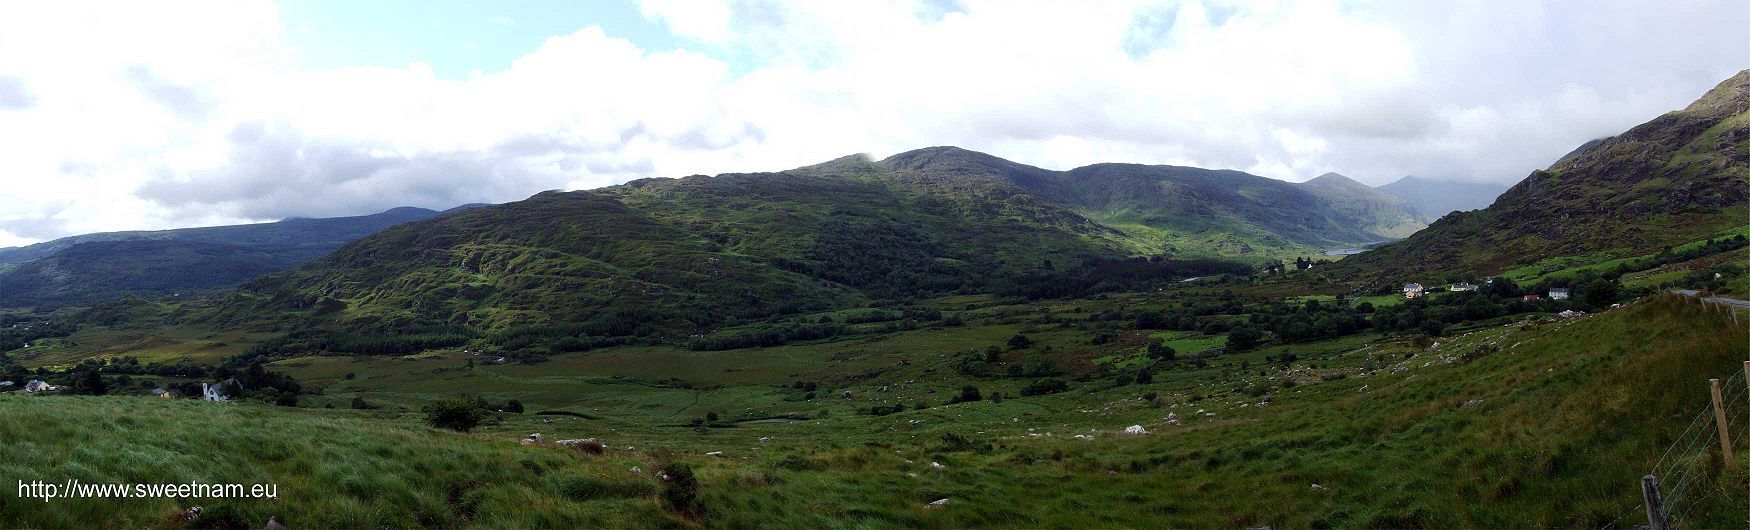 Panoramic photo of the Black Valley, Co. Kerry.